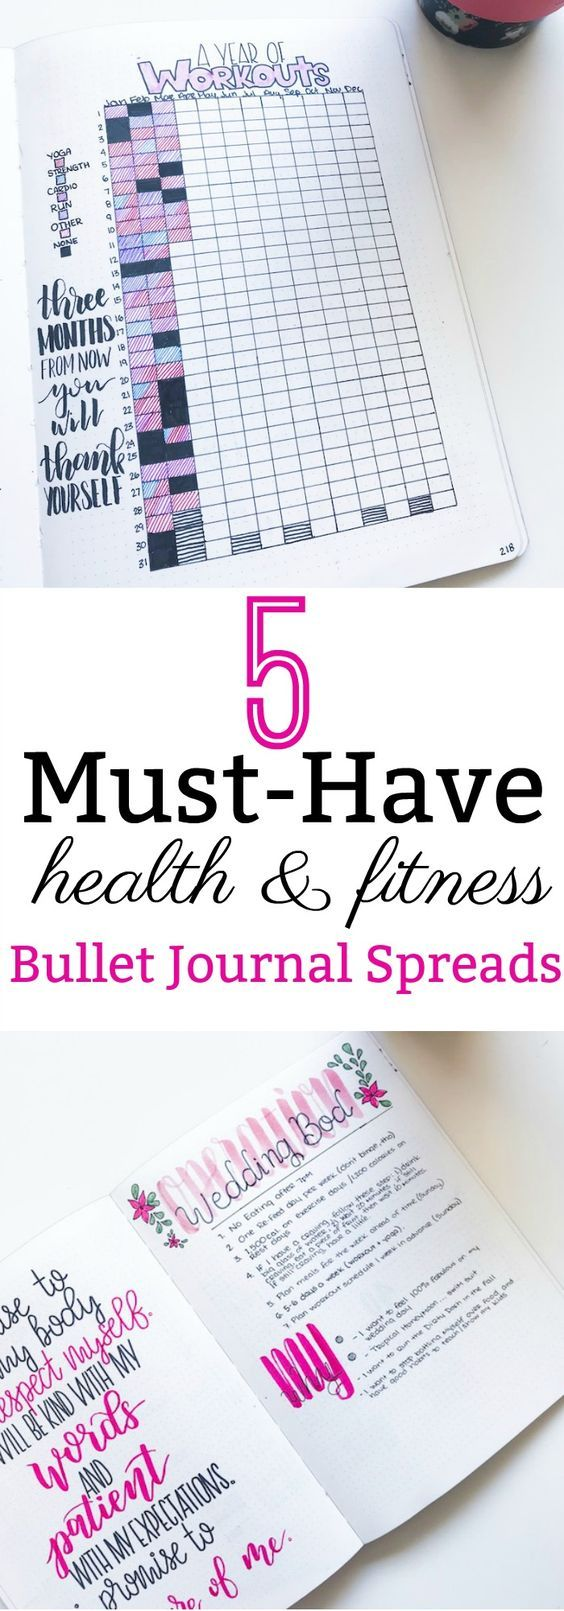 5 Must-Have Health and Fitness Bullet Journal Spreads - The Petite Planner #healthandfitness